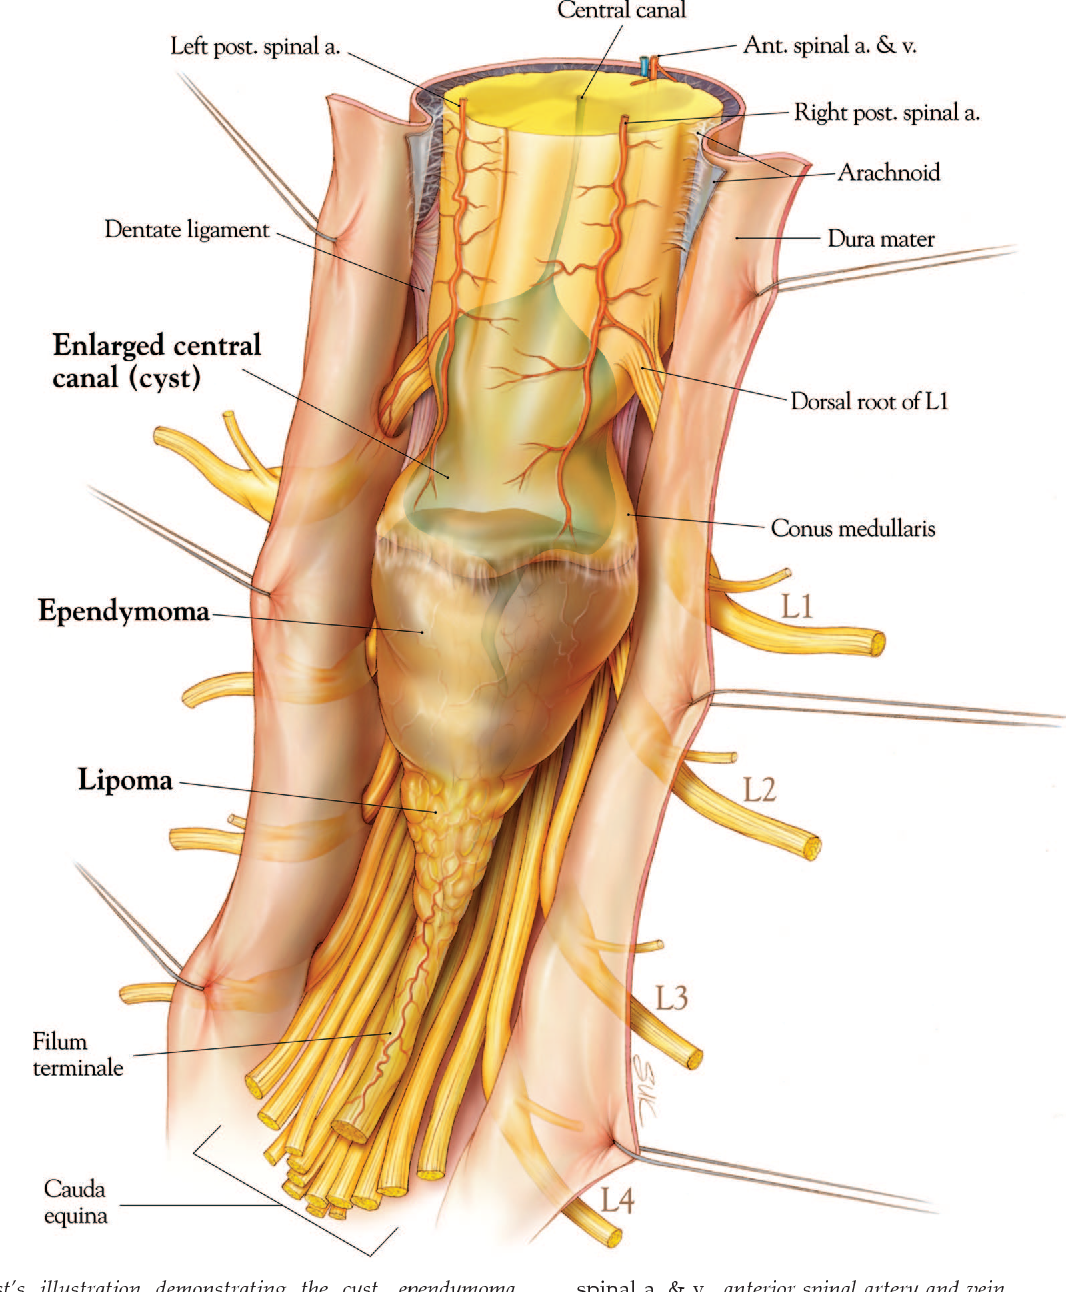 Filum Terminale Pain / The filum terminale is an extension of the pia mater that is attached to the coccygeal segments, whose function is to suspend the filum terminale lipomas represent the most common intraspinal lipoma.